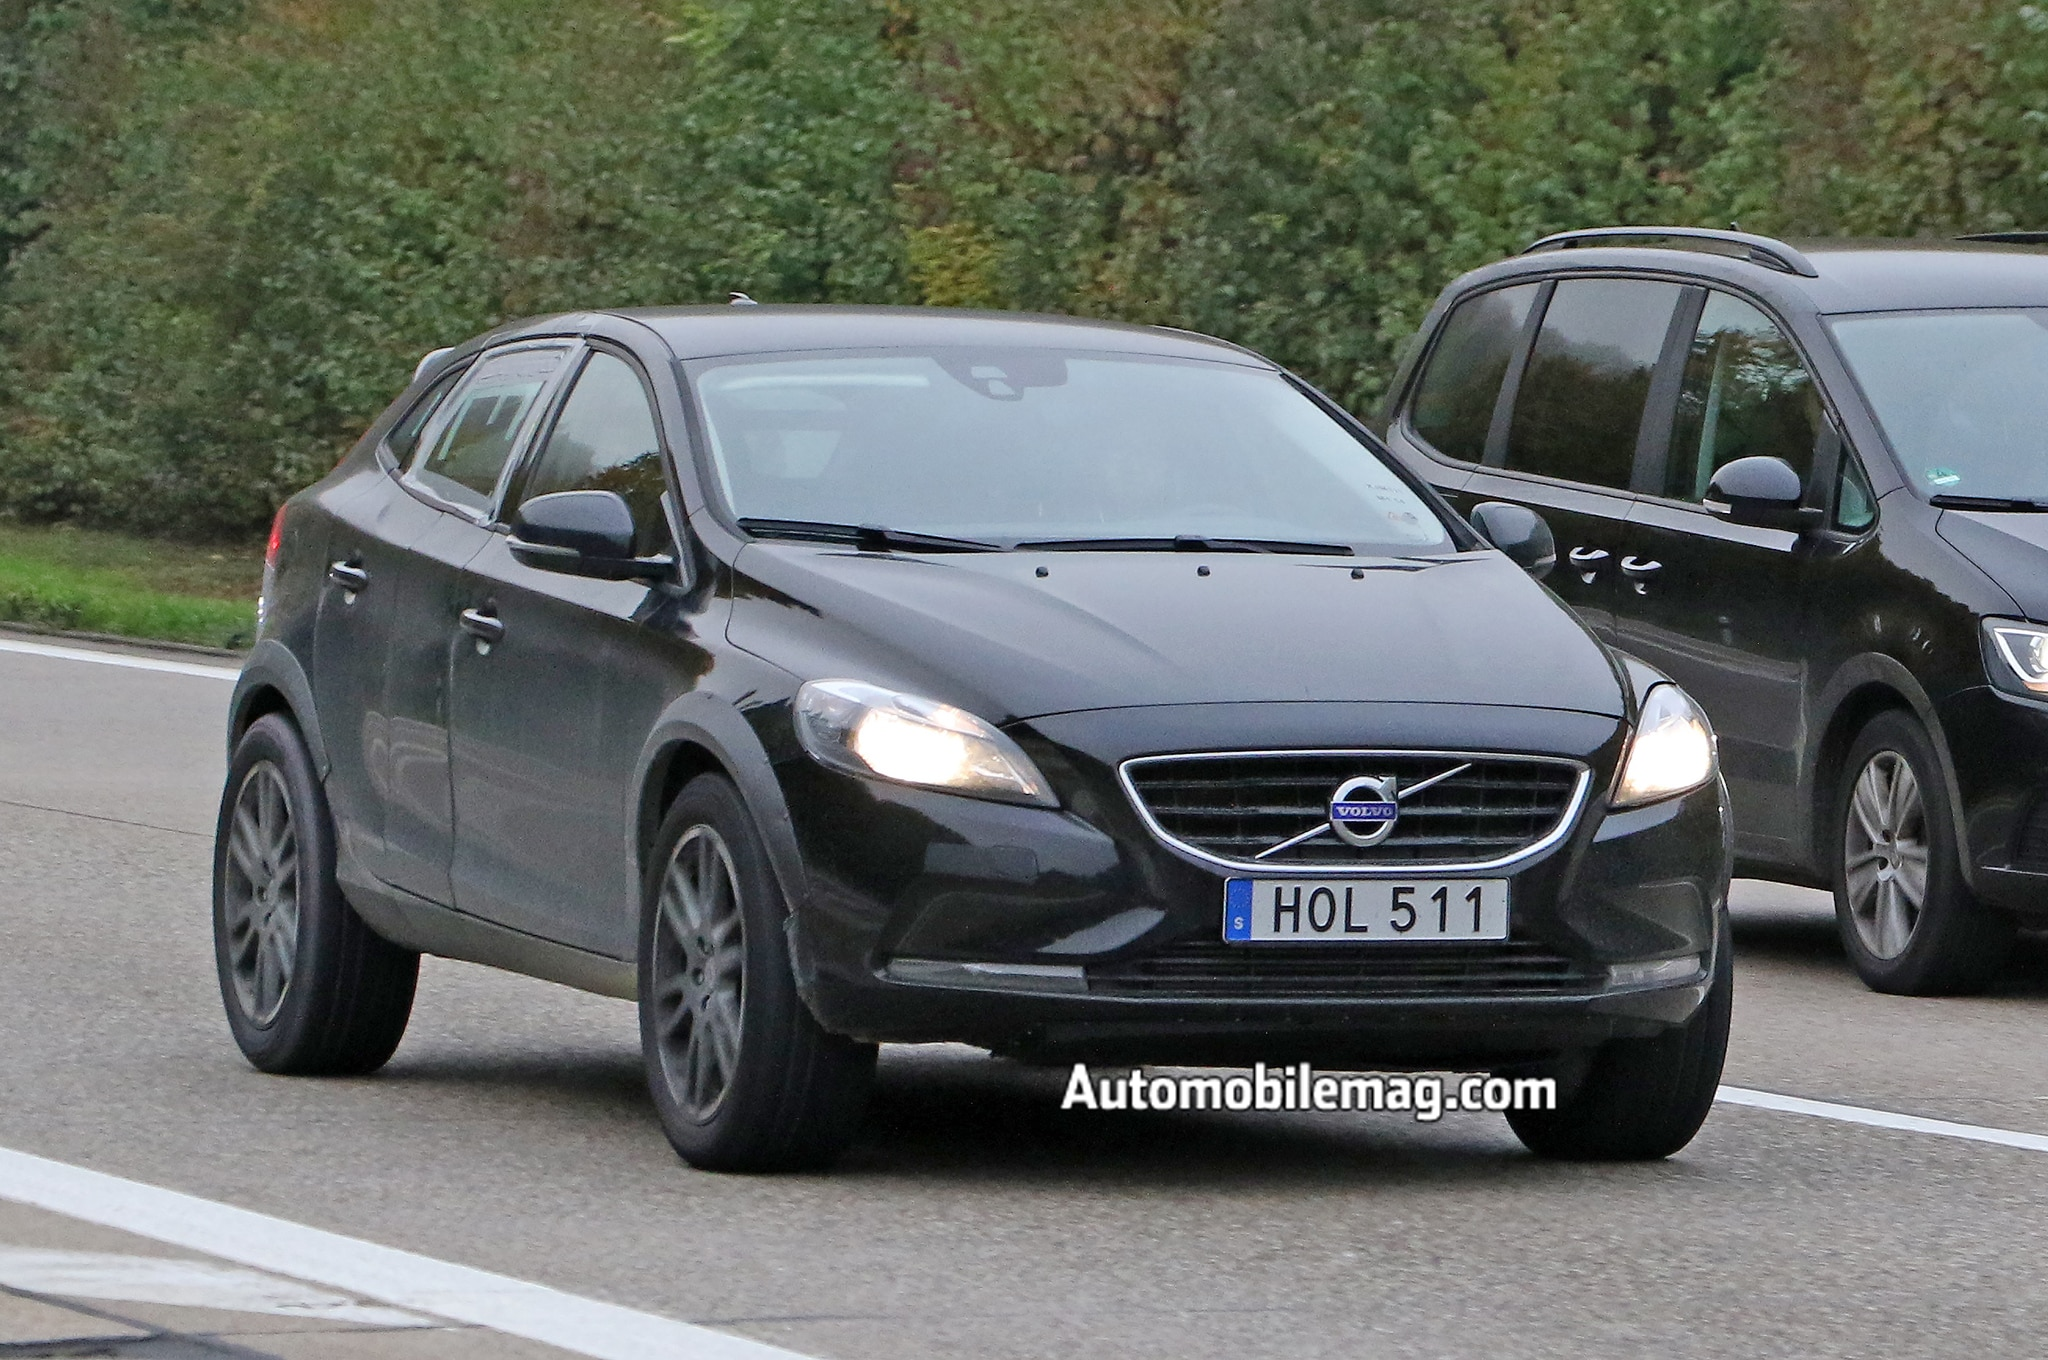 volvo xc40 compact crossover spied testing in prototype form. Black Bedroom Furniture Sets. Home Design Ideas